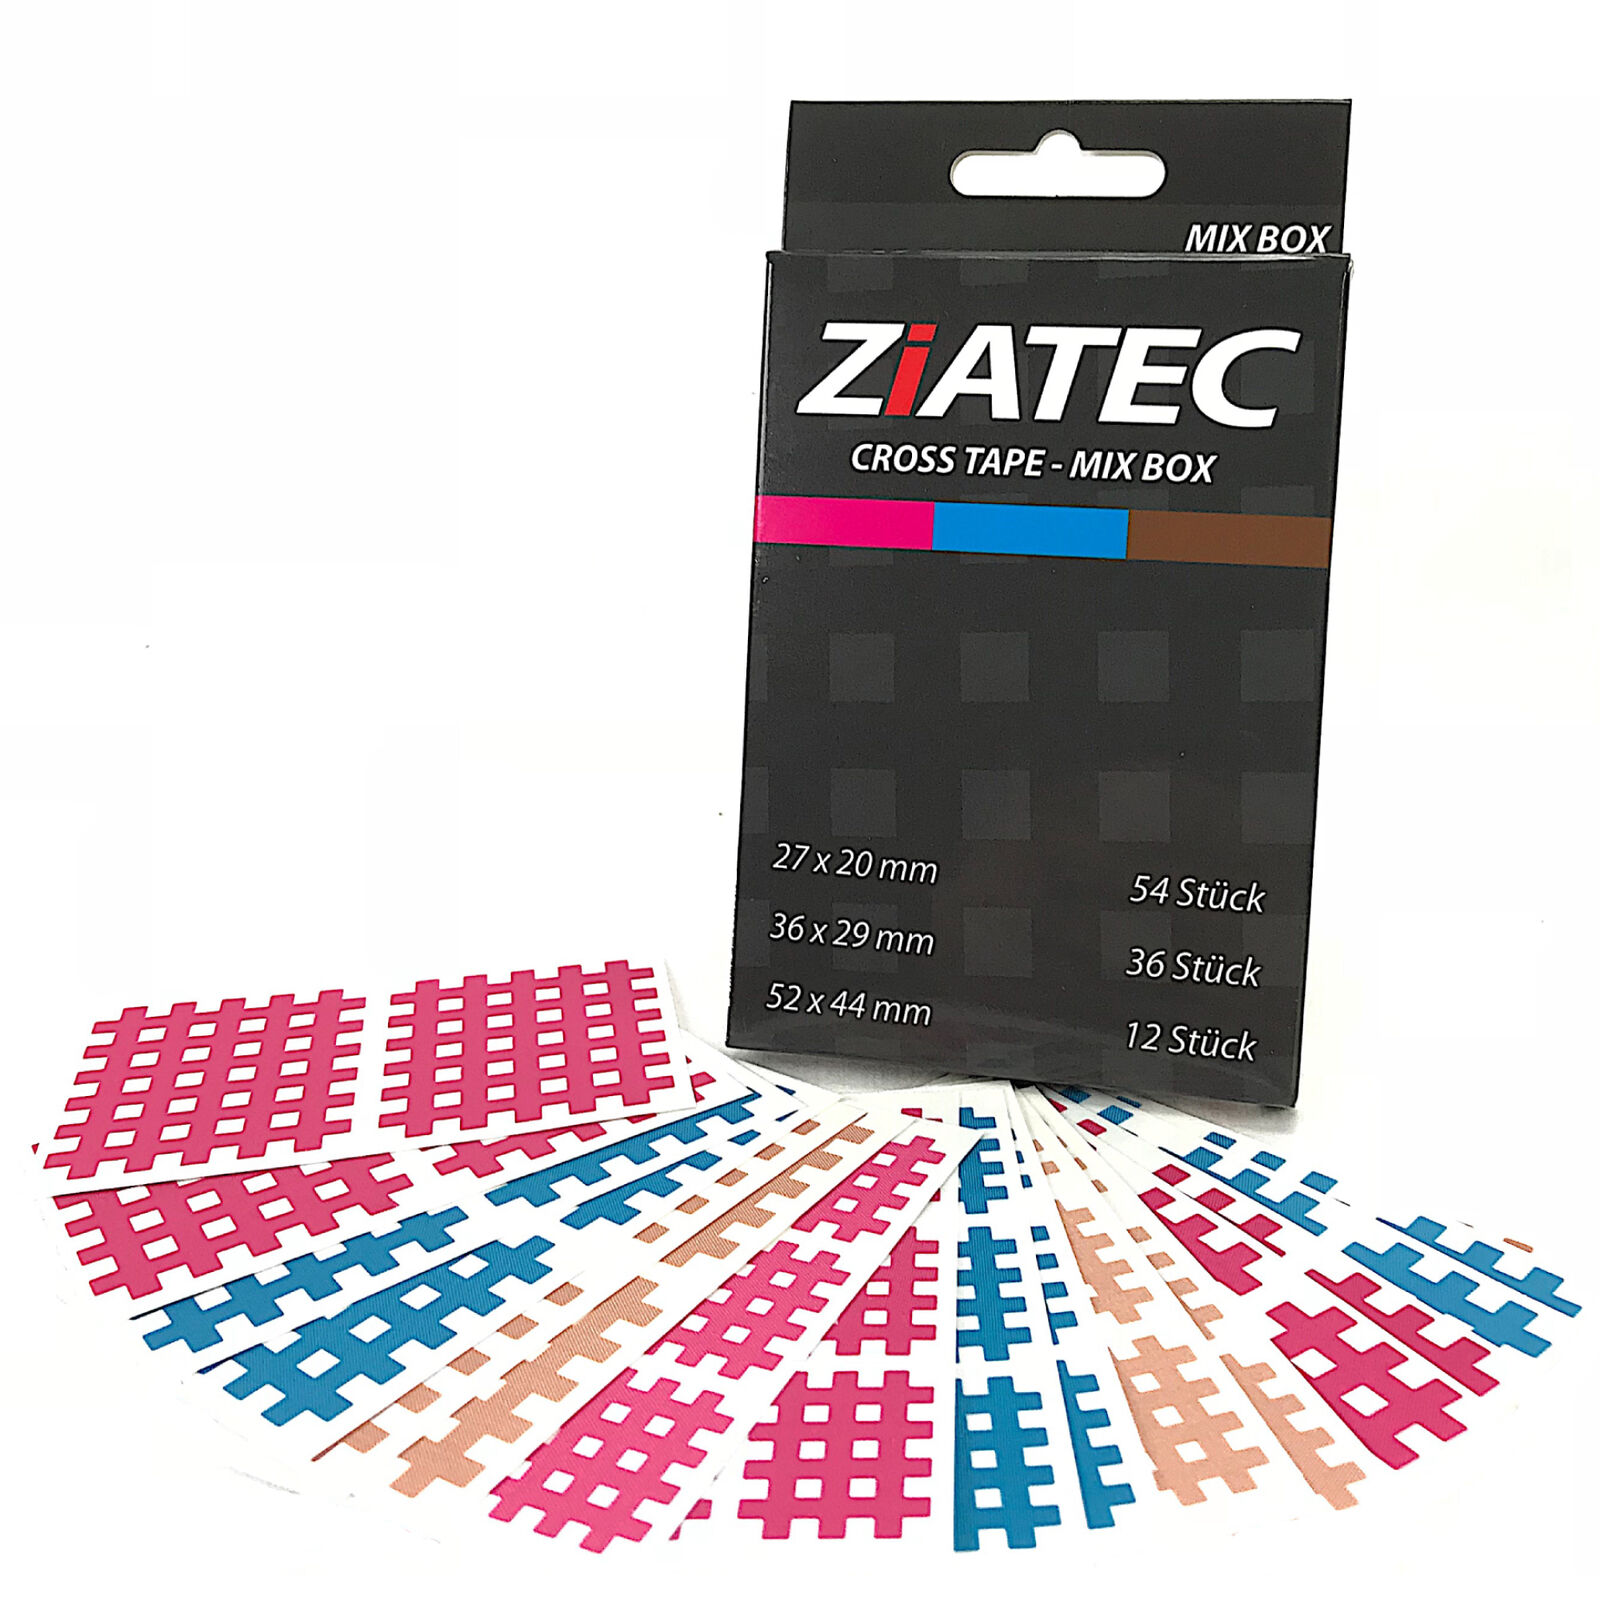 Ziatec Cross-Tape-Pflaster,Gittertapes,Akupunktur-Pflaster,Physio-Tape,Crossling